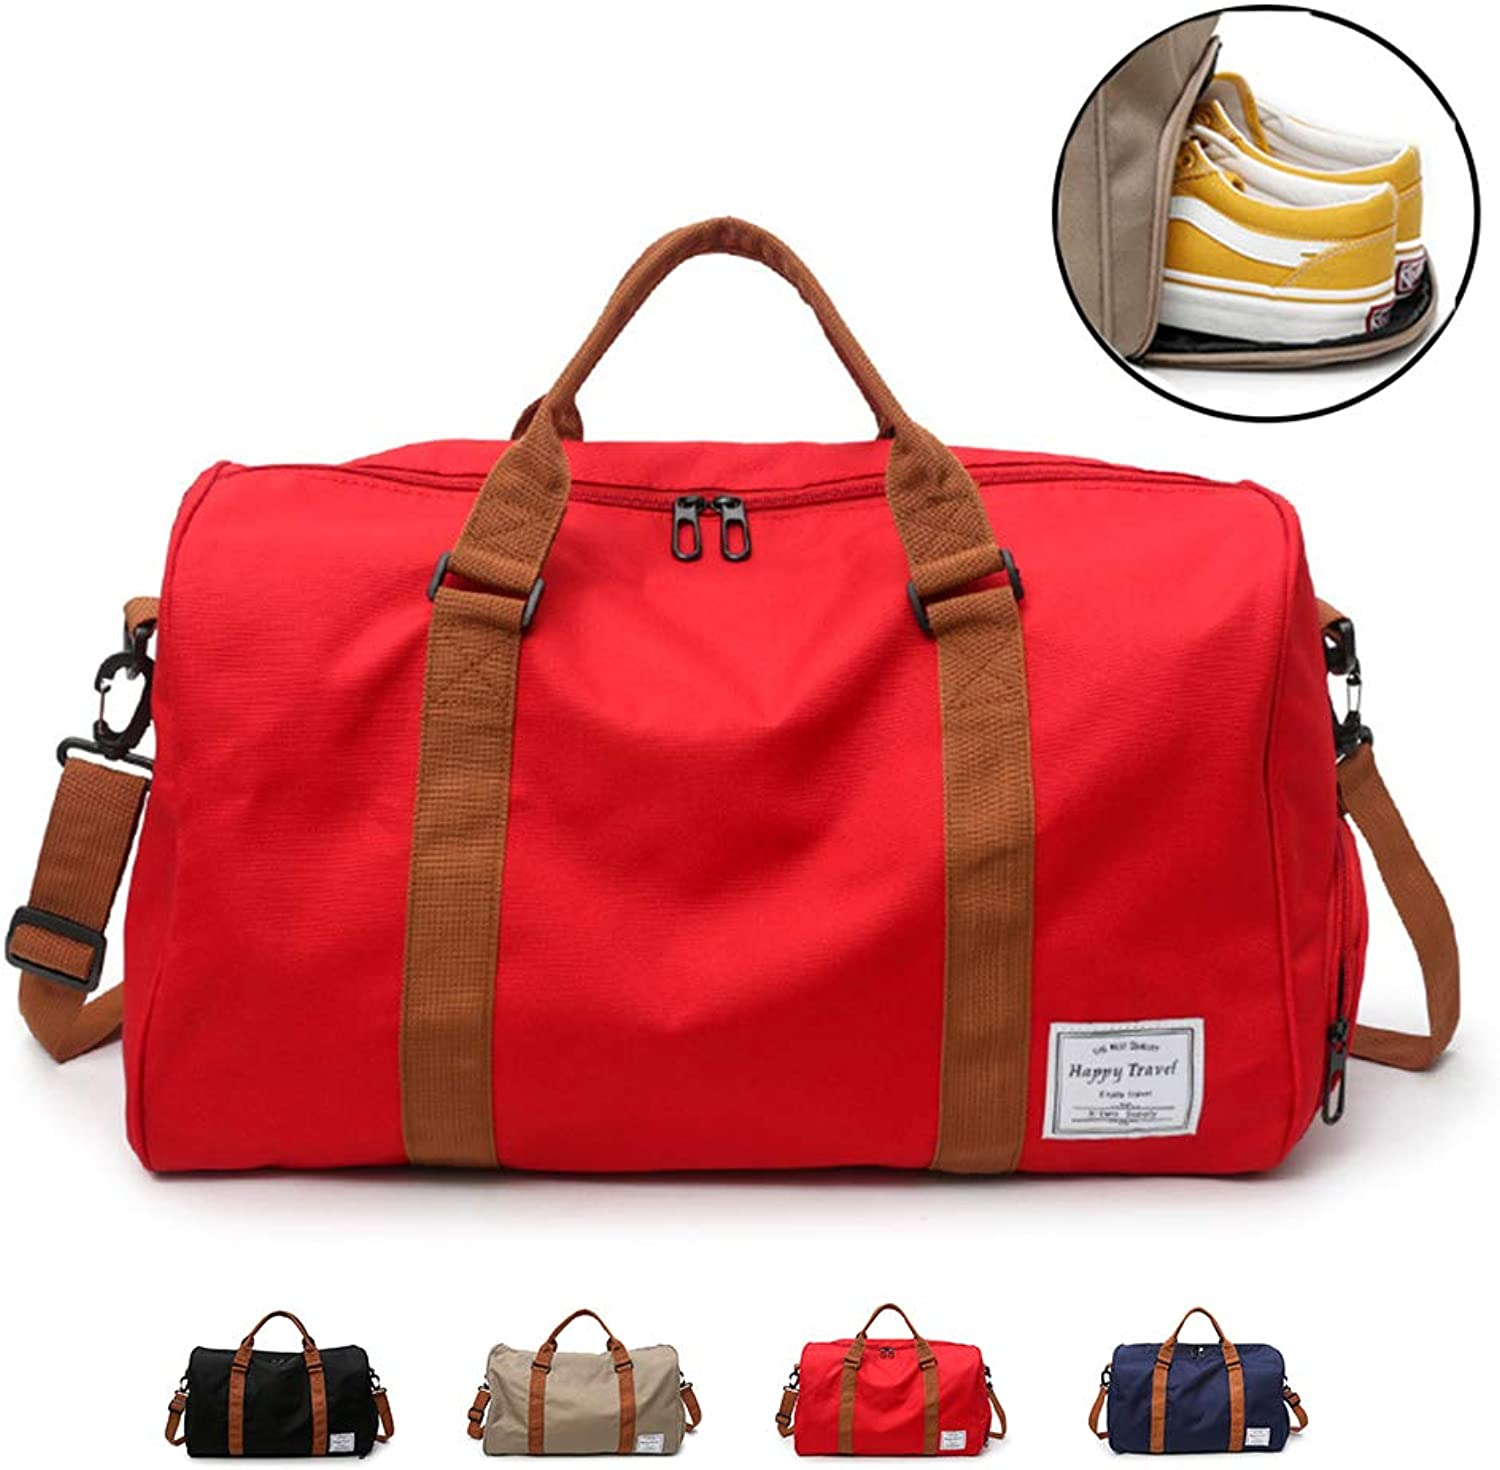 Sports Gym Bag with shoes Compartment, Travel Duffle Bag for Men and Women,Red